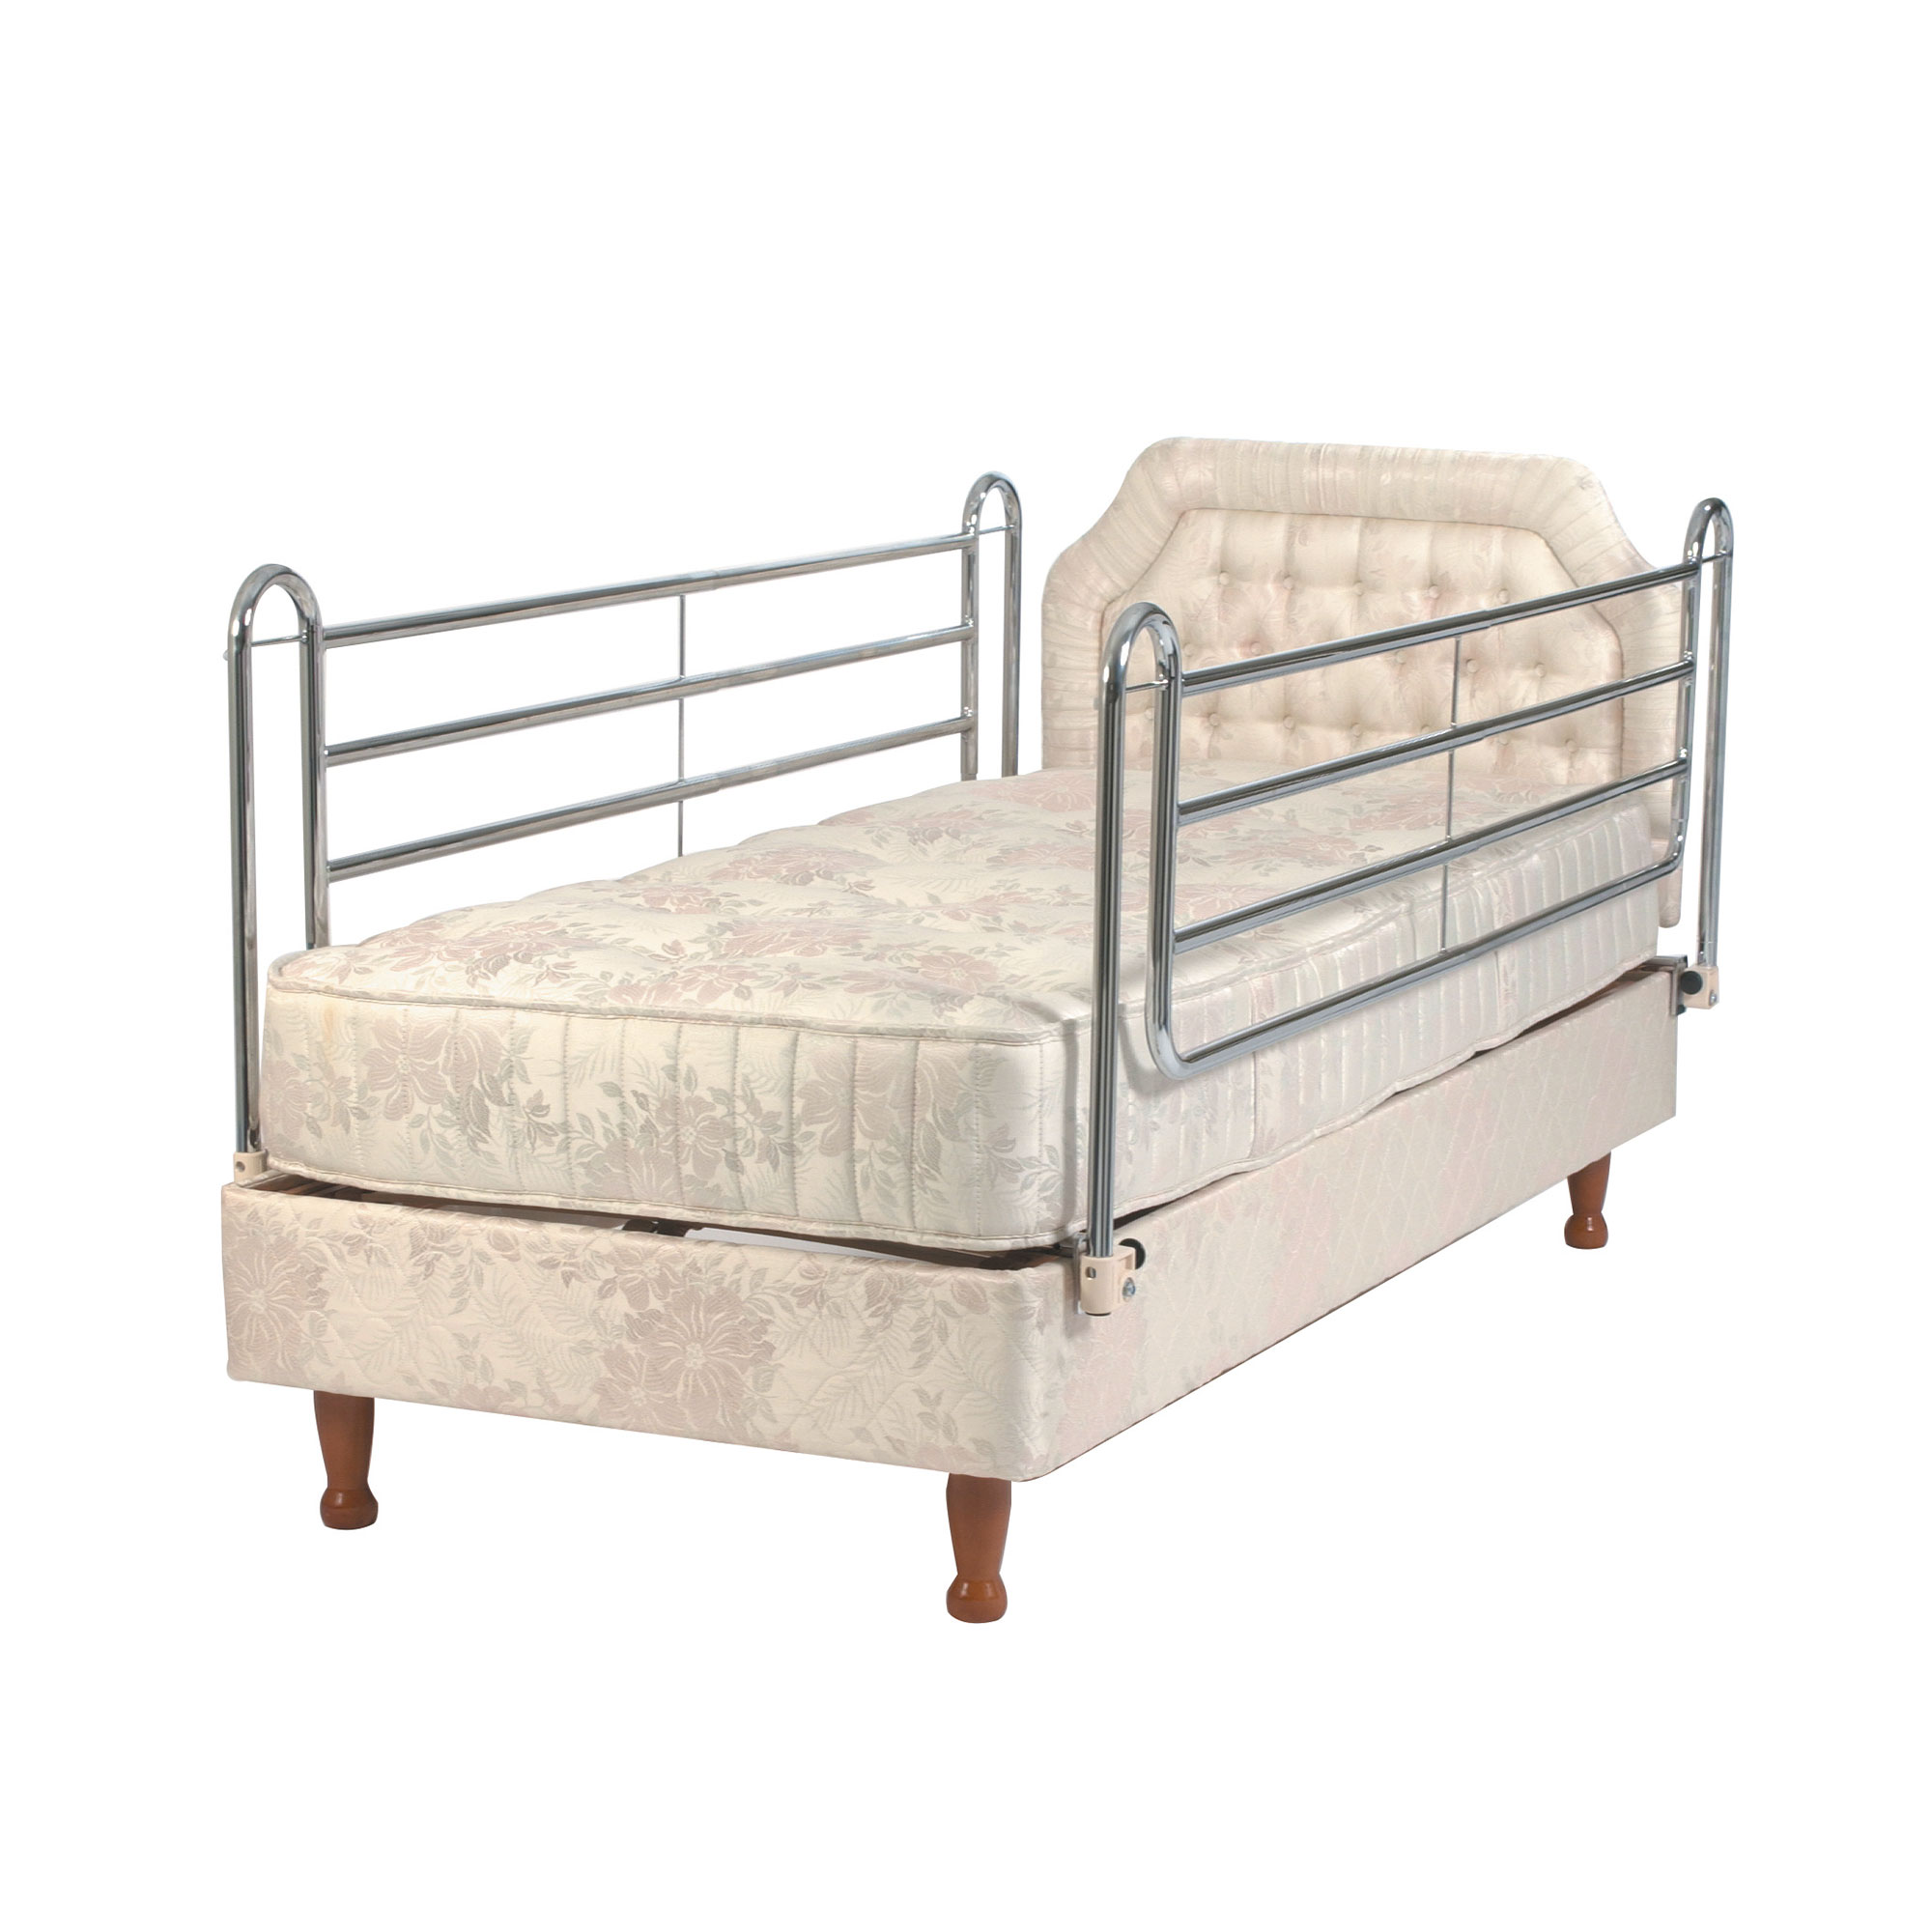 Bed Aids 5410 Extra High 4 Bar Bed Rails Divan Type Roma Medical